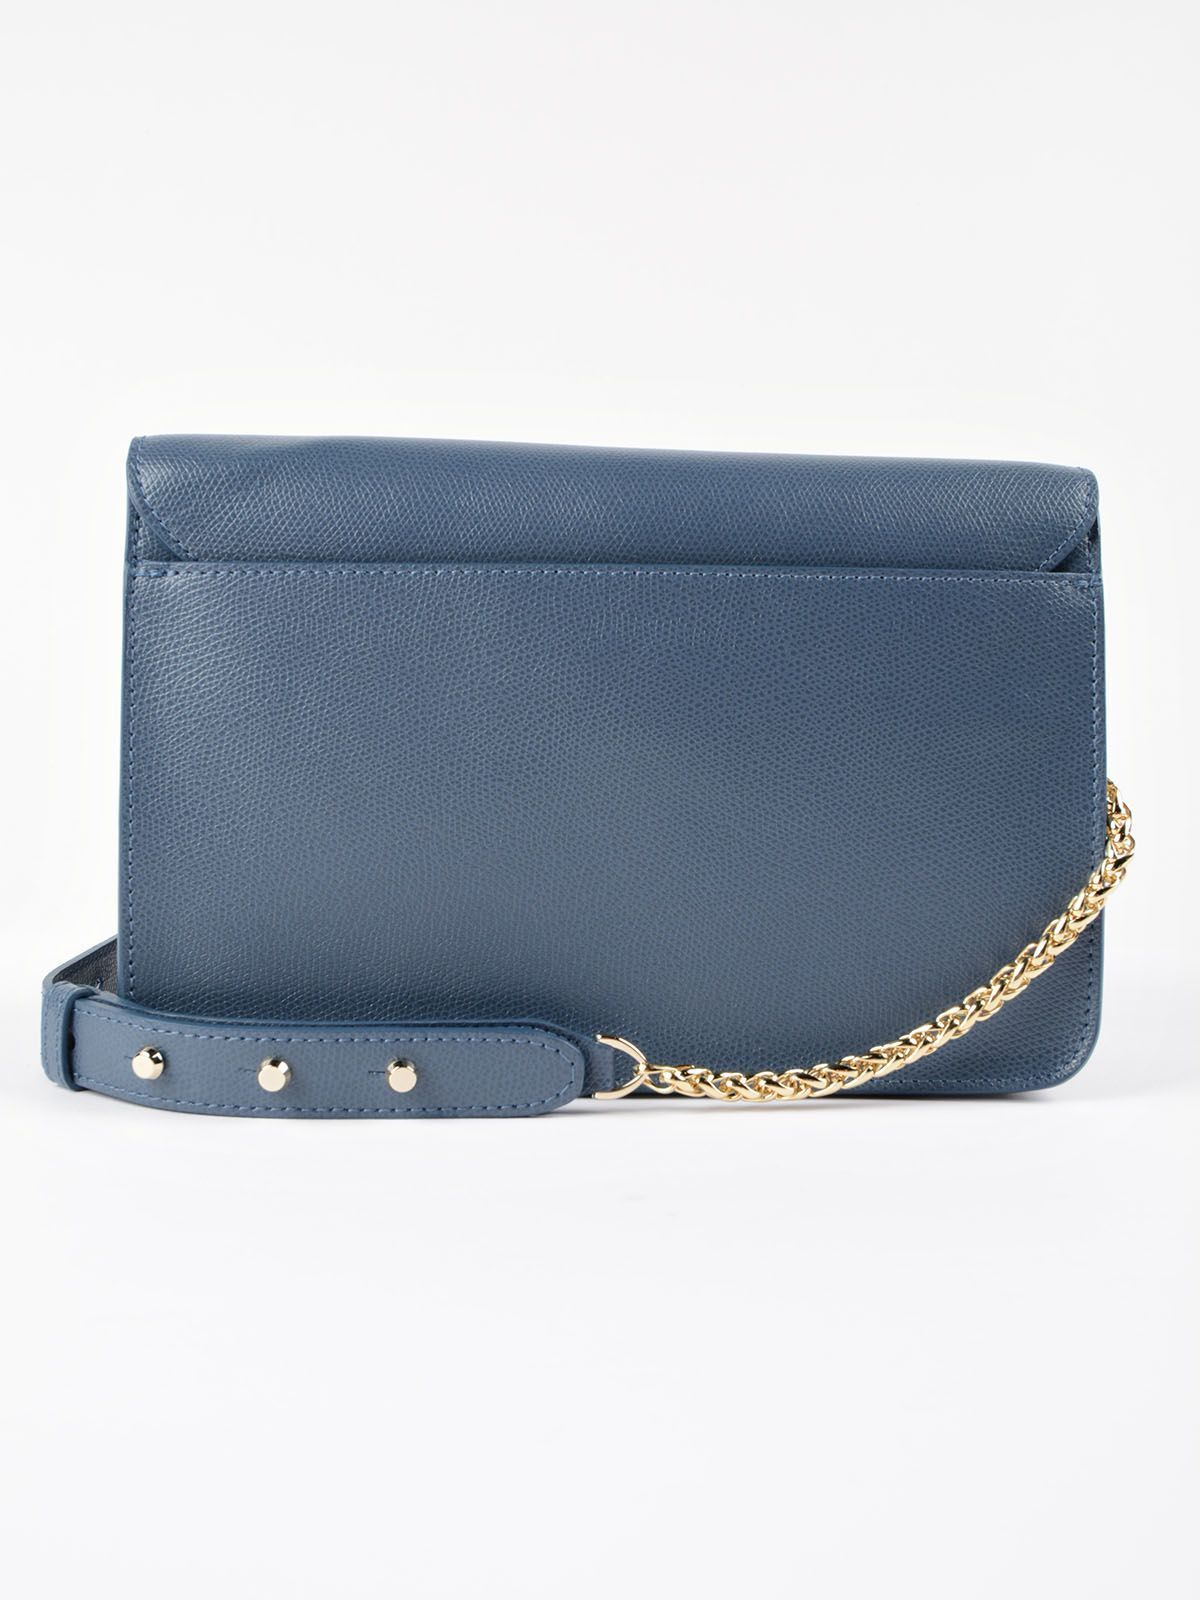 送料込 Furla Metropolis Shoulder Bag バッグ